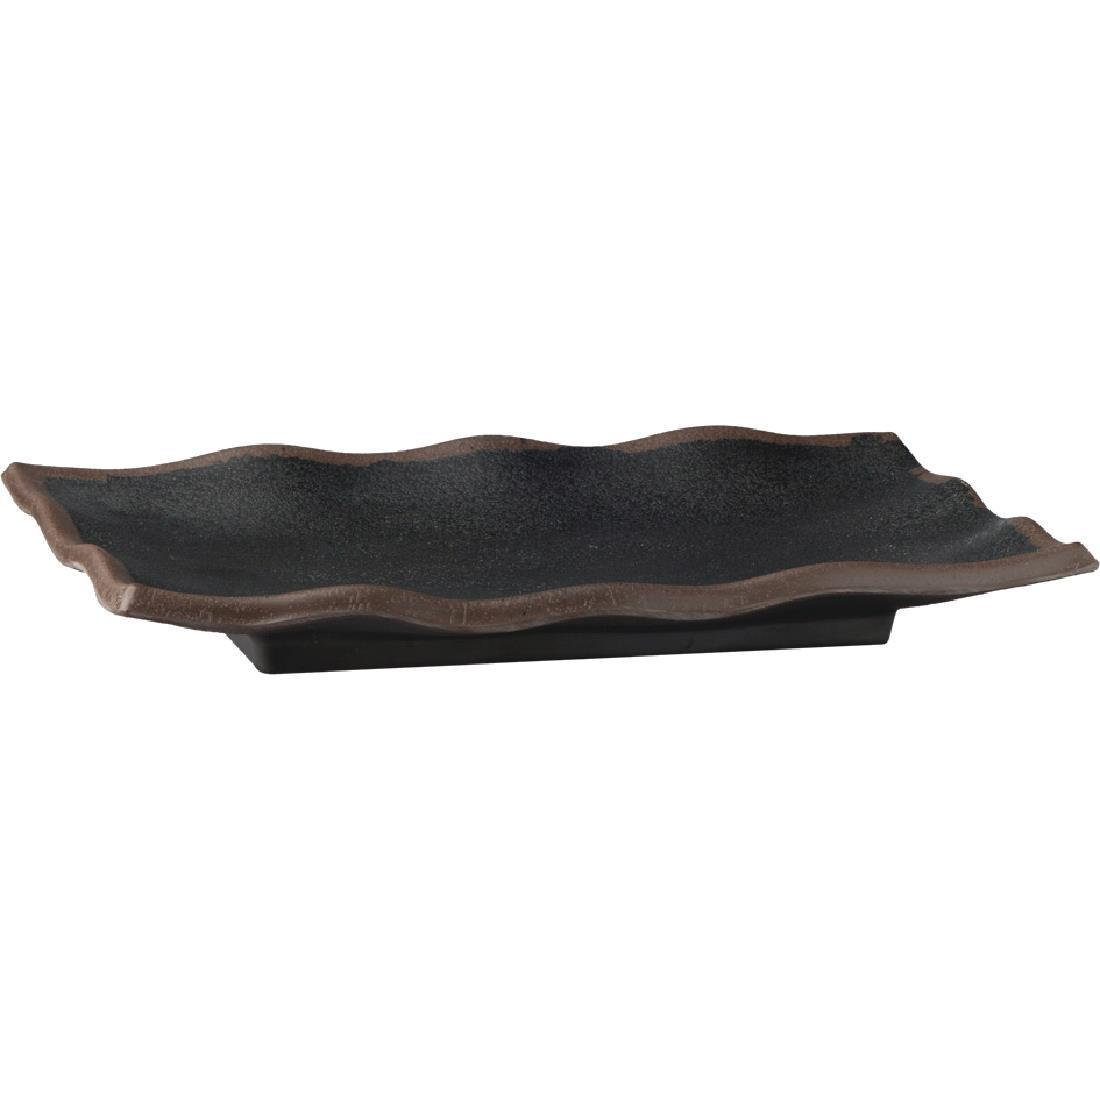 APS Marone Melamine Wavy Tray Black 225x 150mm - Each - GK838